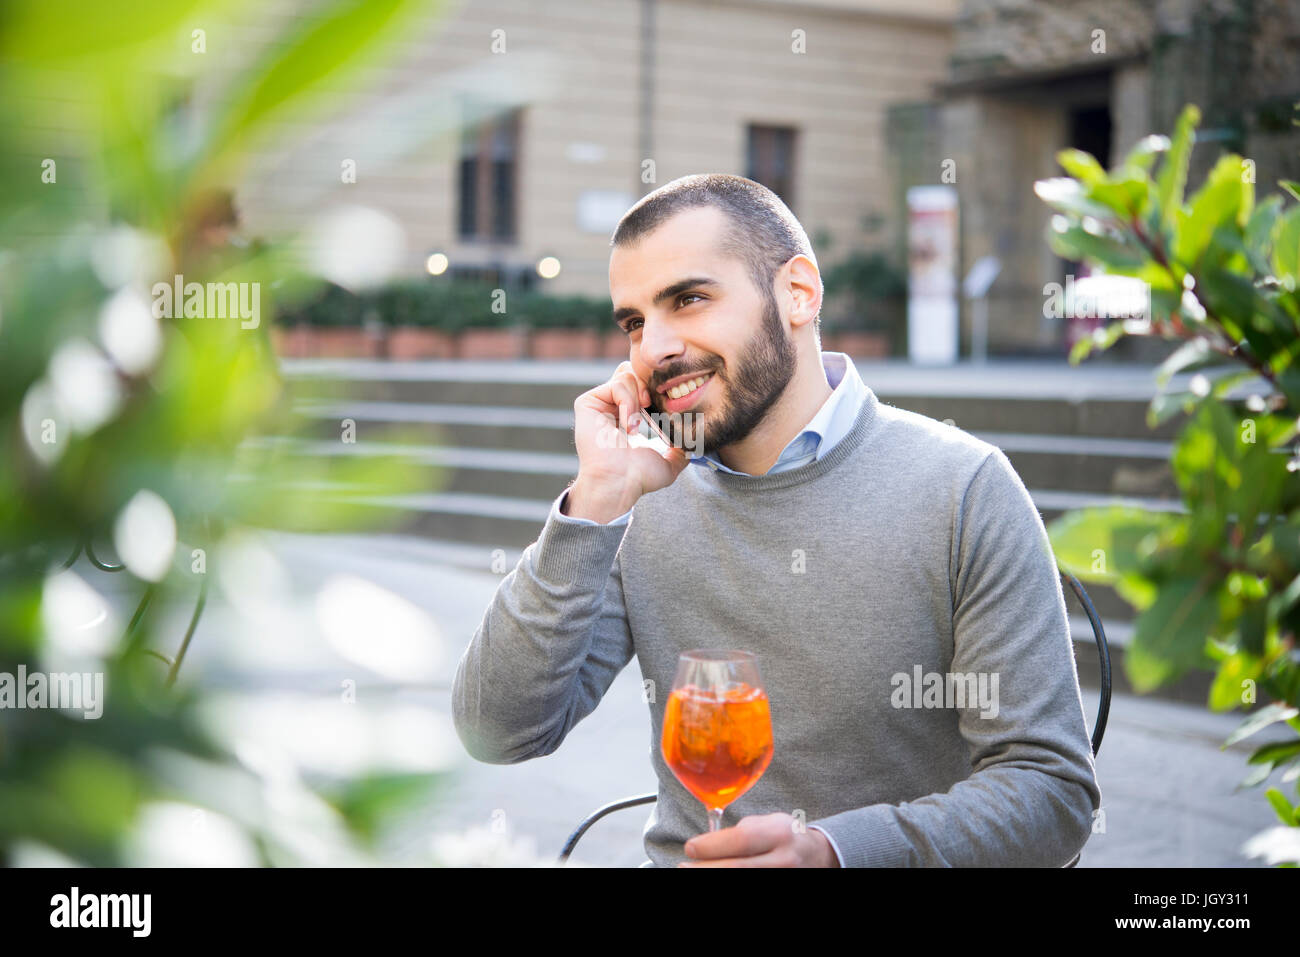 Young man sitting outside bar, holding drink, using smartphone - Stock Image